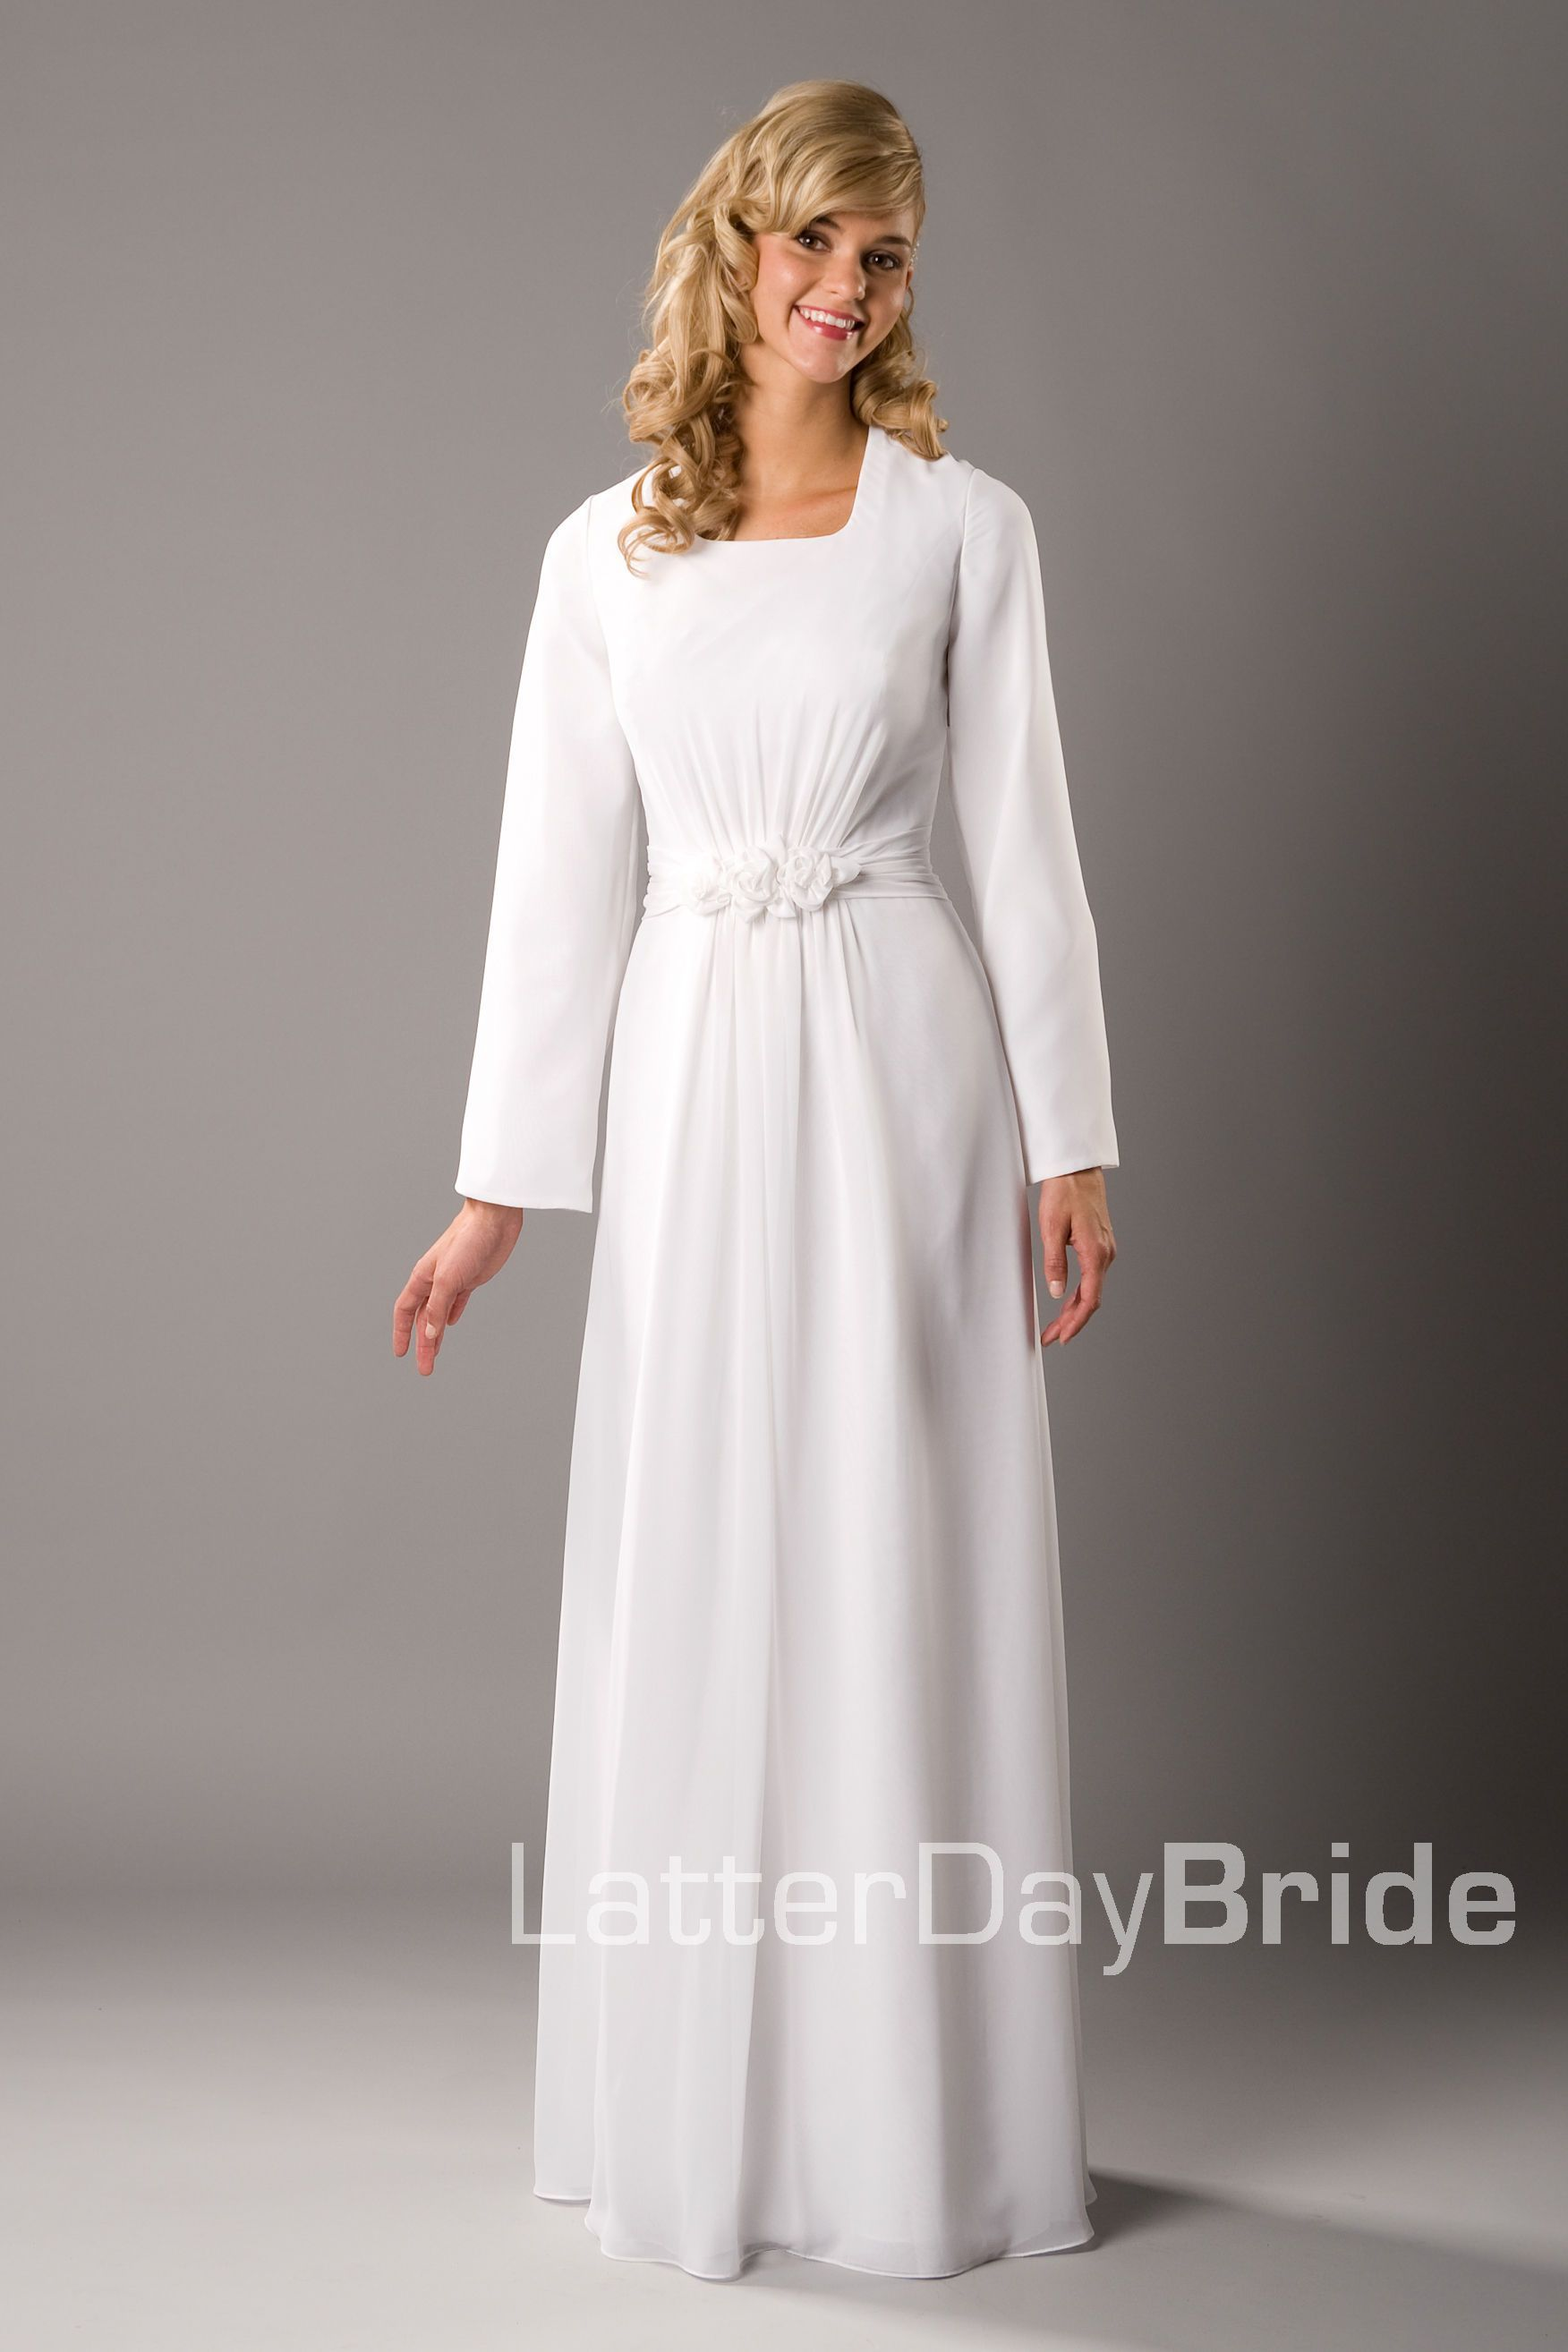 Modest wedding dress brigham latterdaybride prom for Mormon modest wedding dresses